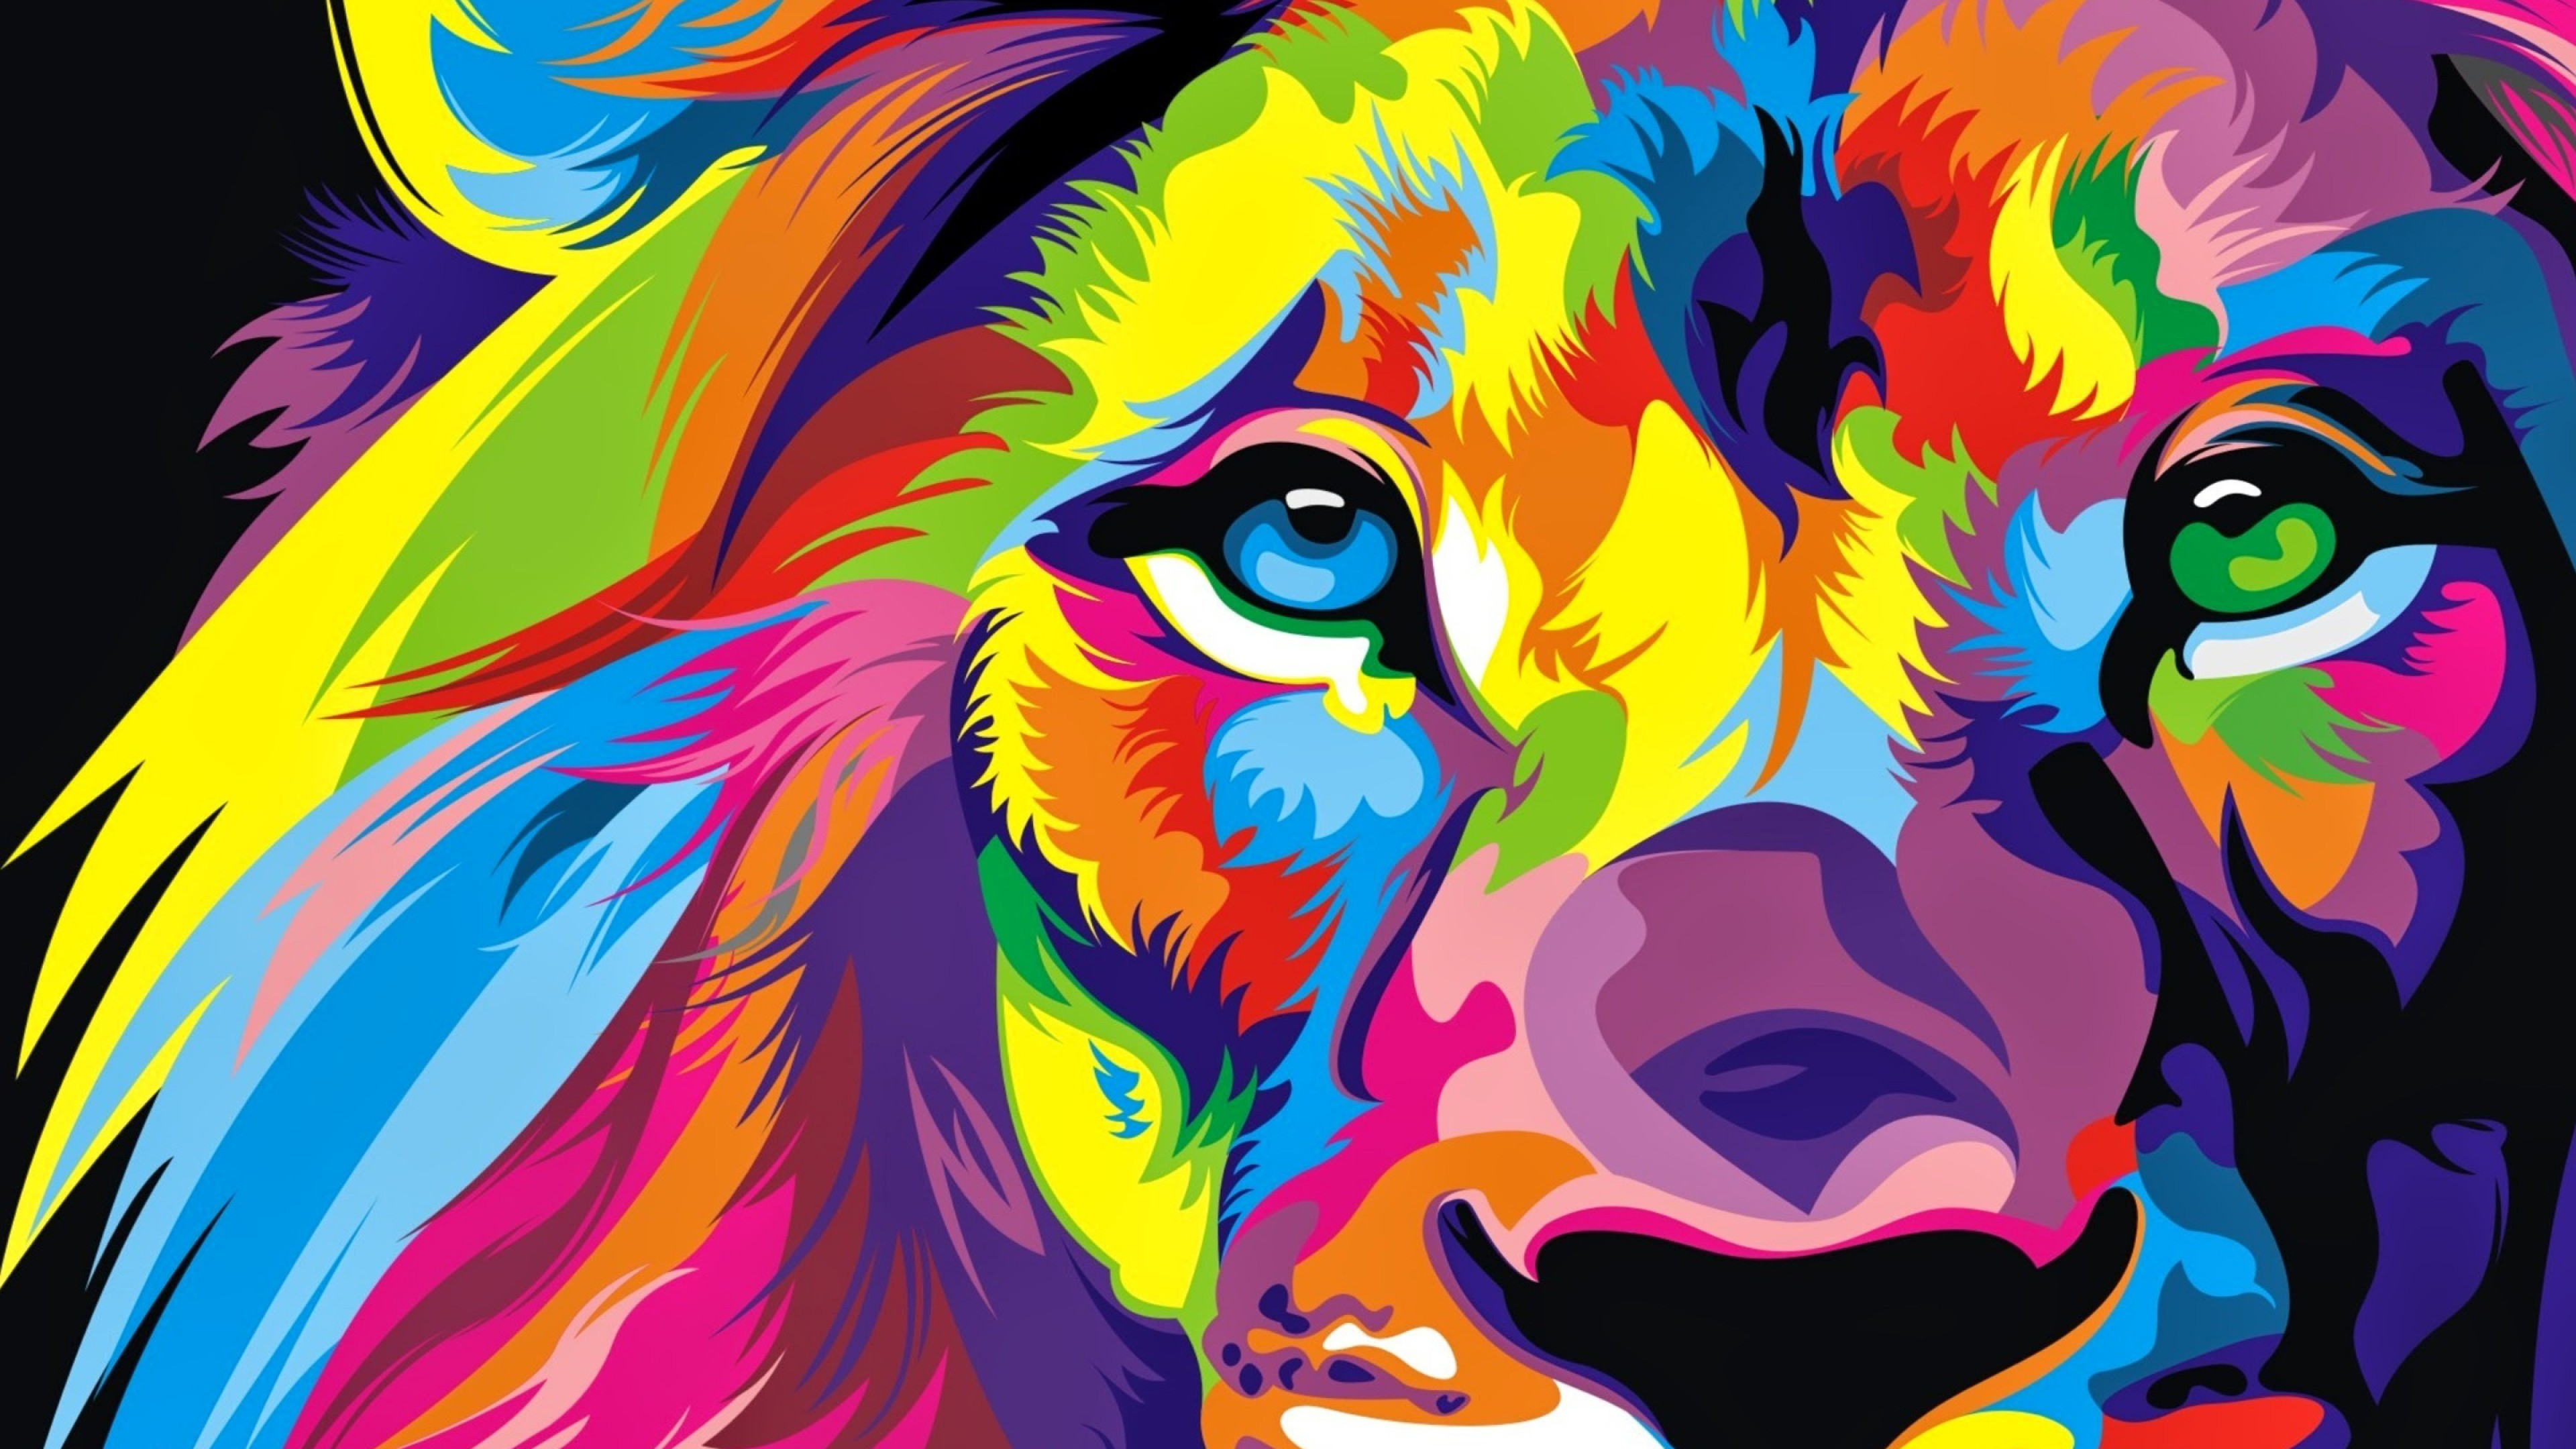 Download Full Hd Colourful Lion Artwork Wallpaper 4k Ultra Hd Hd